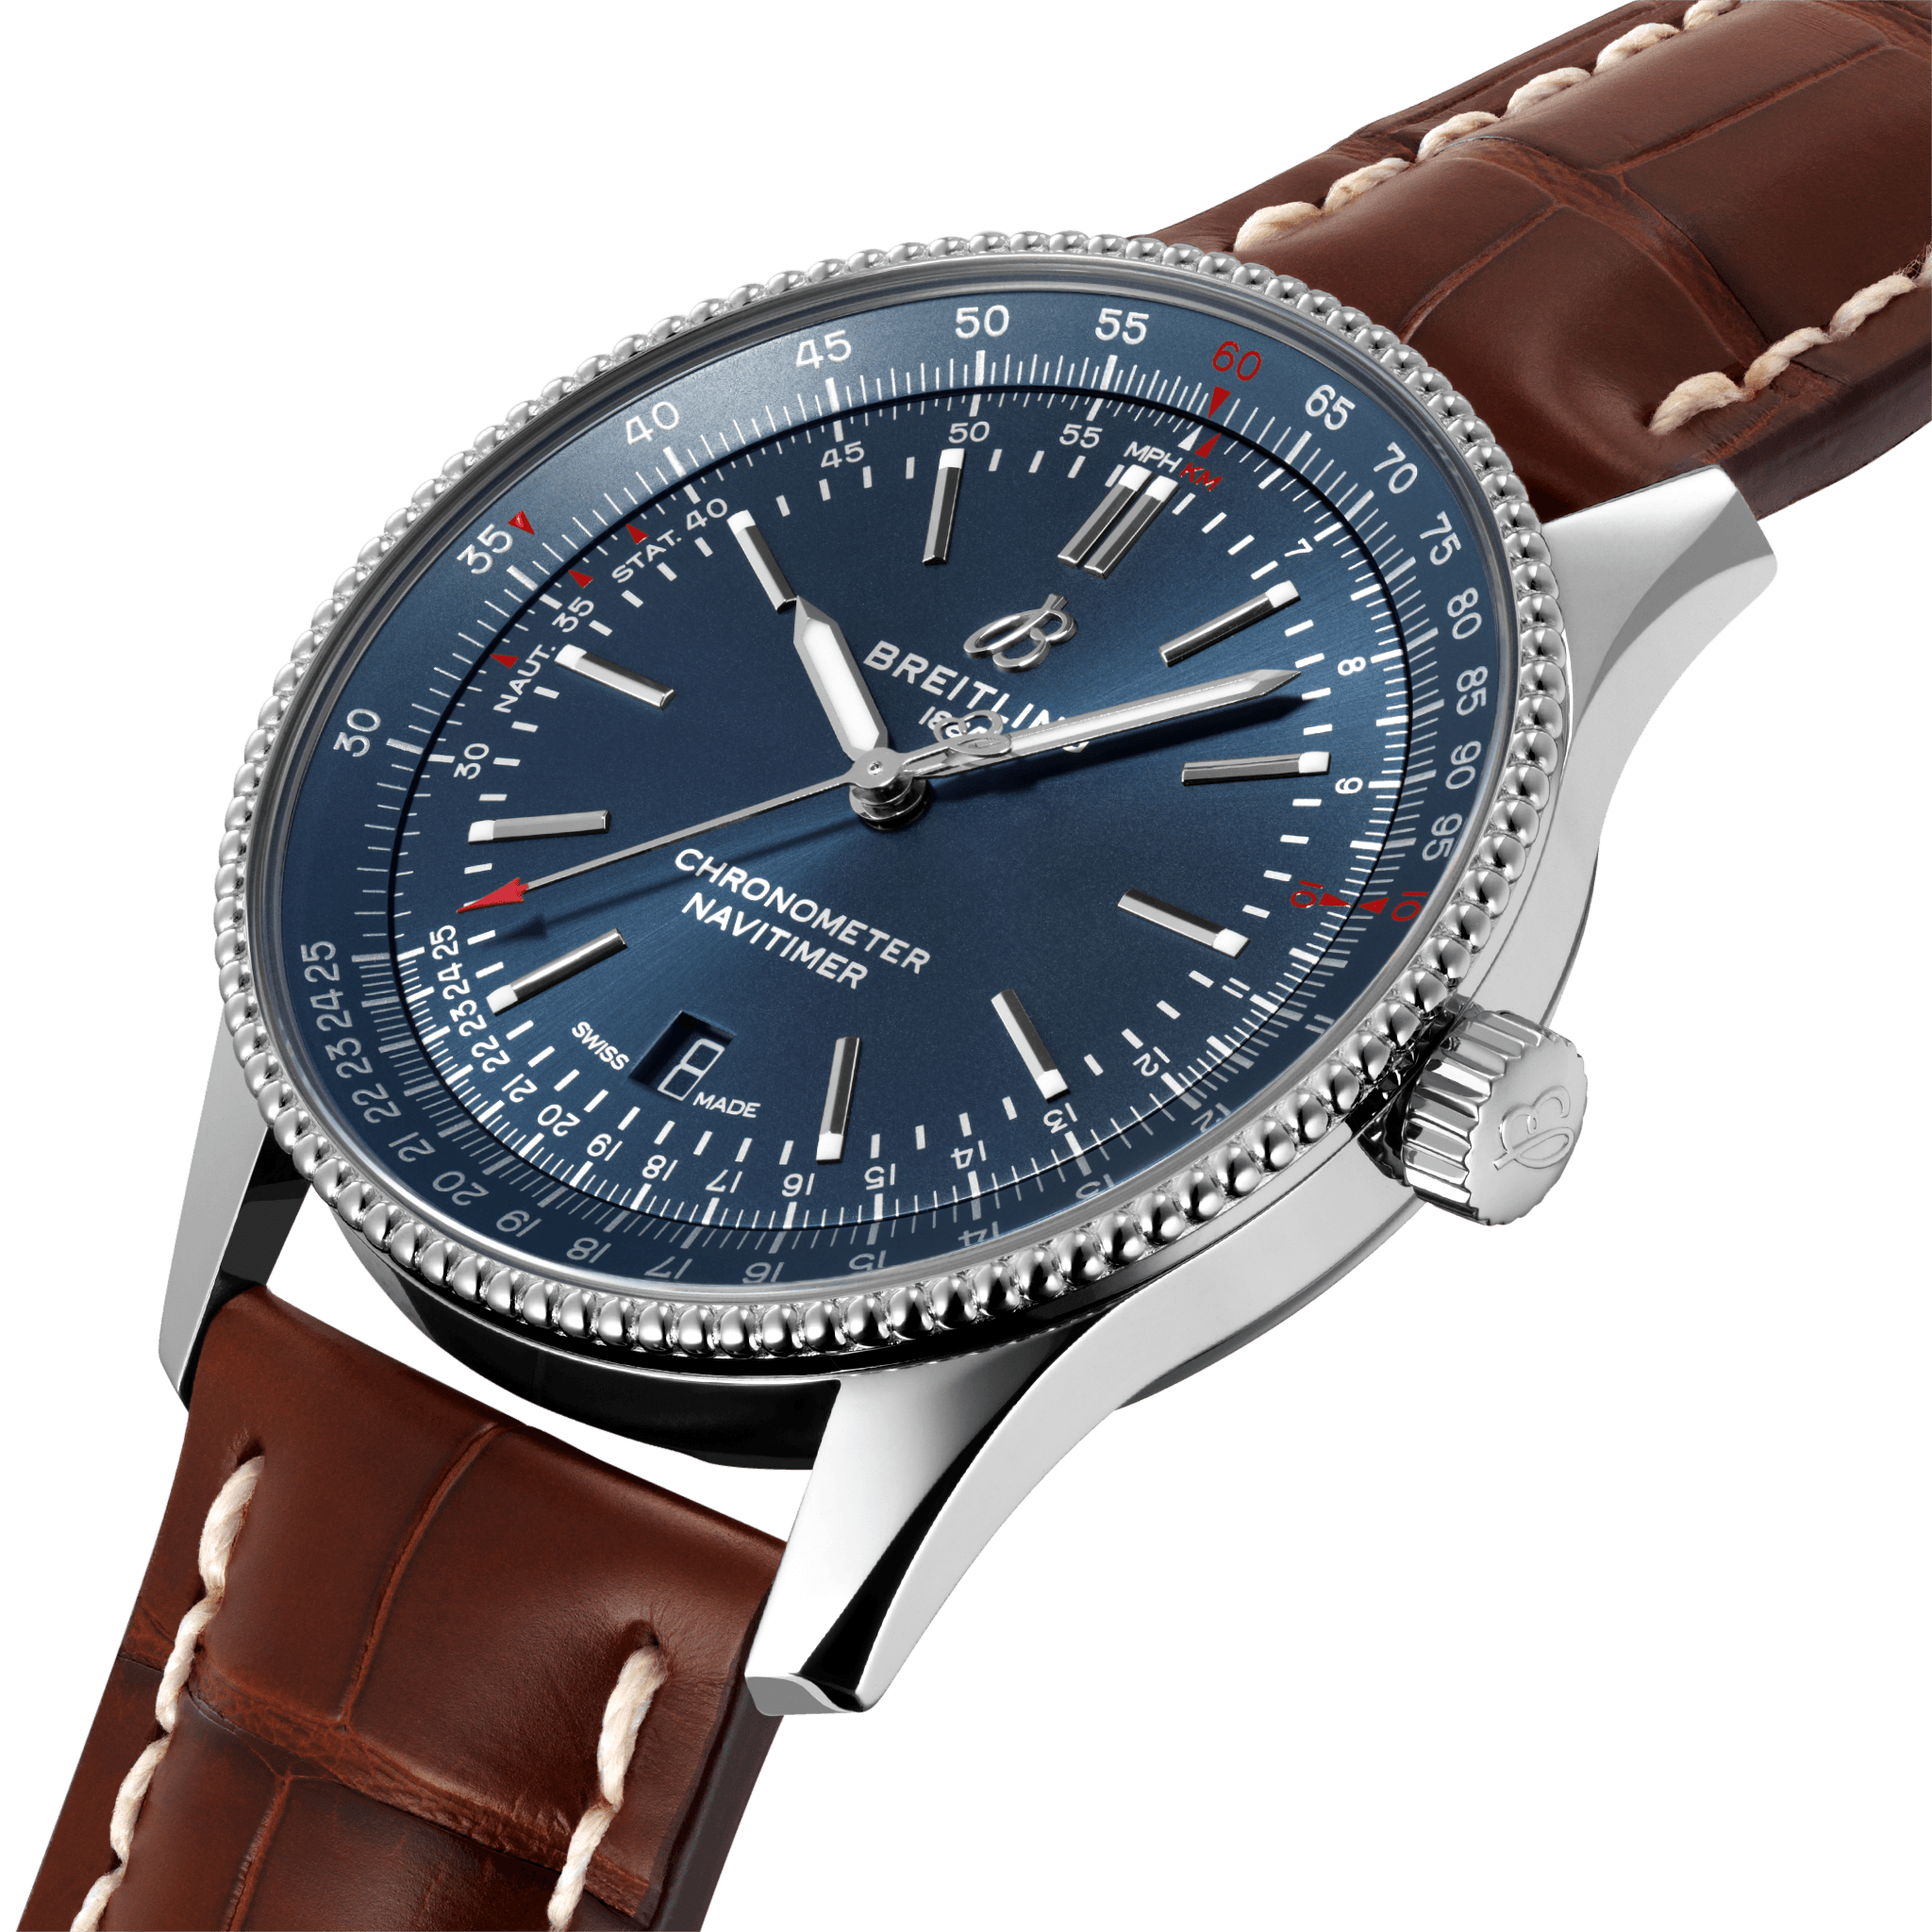 A17326161C1P2 Breitling BREITLING Navitimer Automatic 41